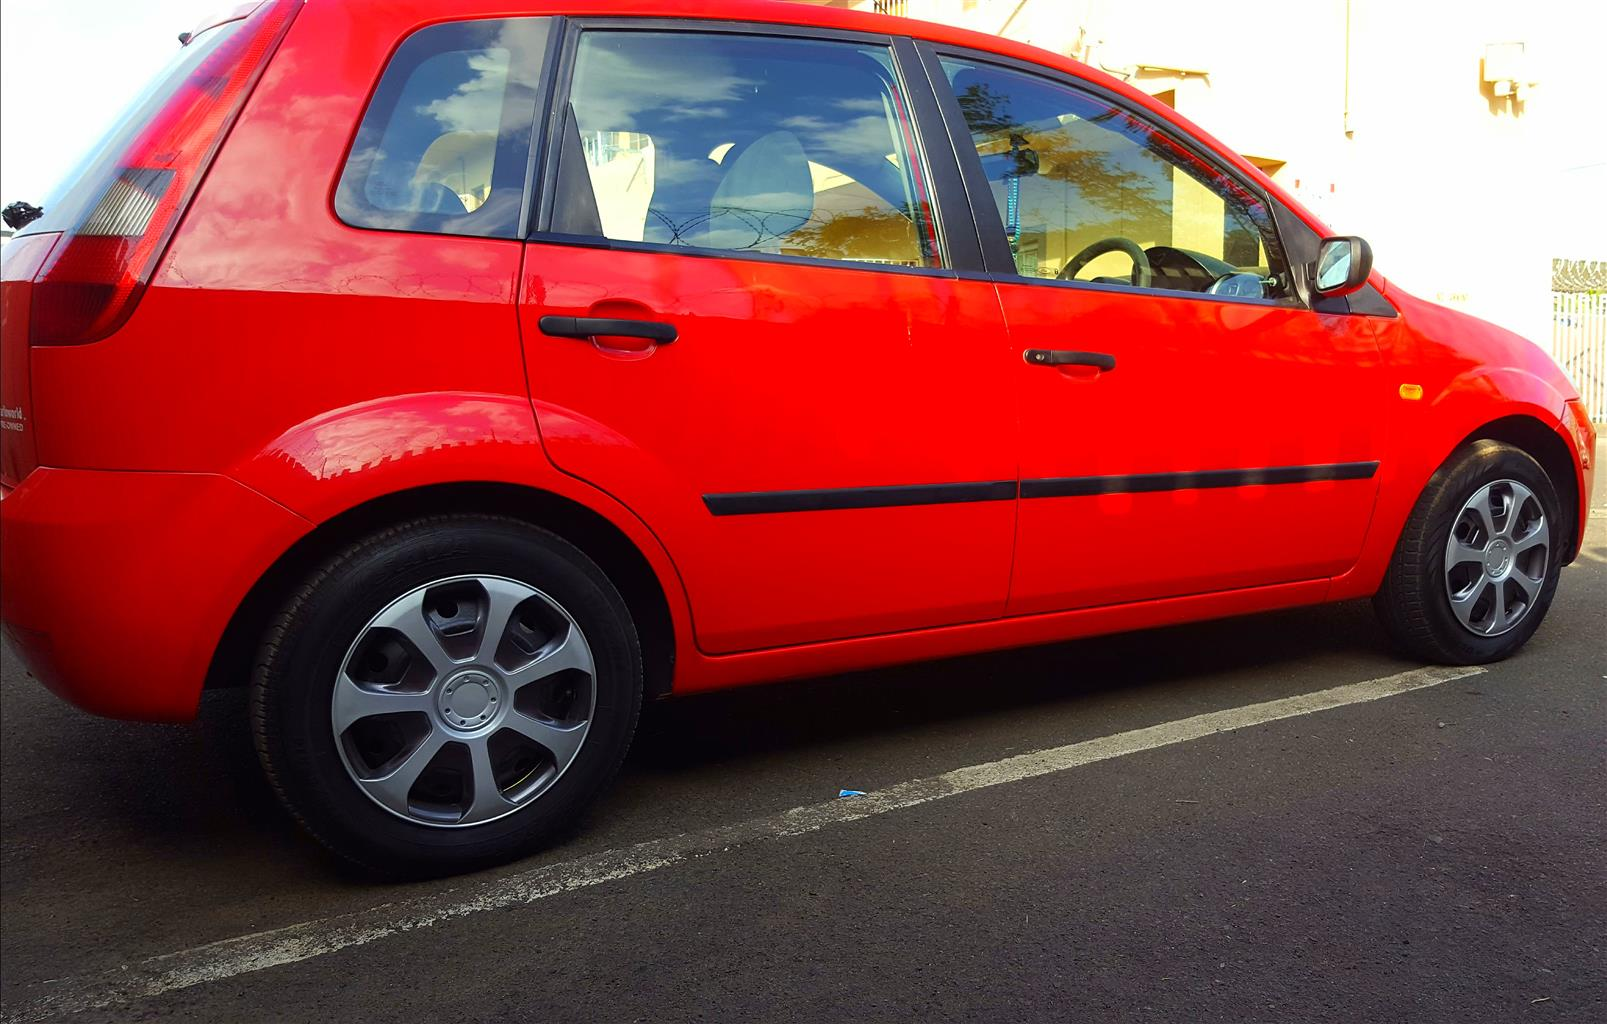 2005 Ford Fiesta 1.4i 5 door